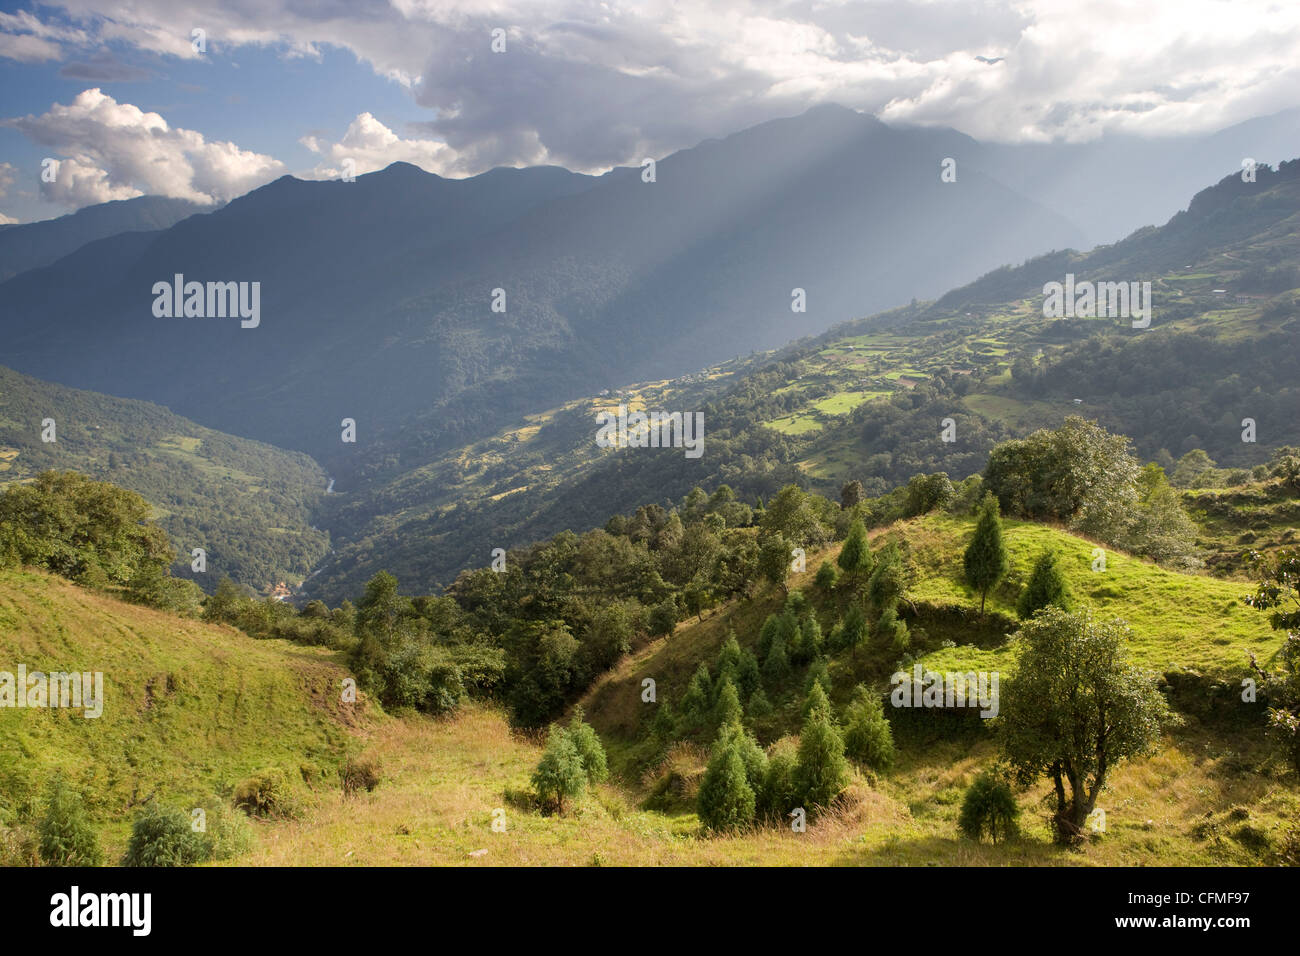 Storm light bathing Tshankha village against a dramatic backdrop of mountains, Phobjikha Valley, Bhutan, Himalayas, - Stock Image